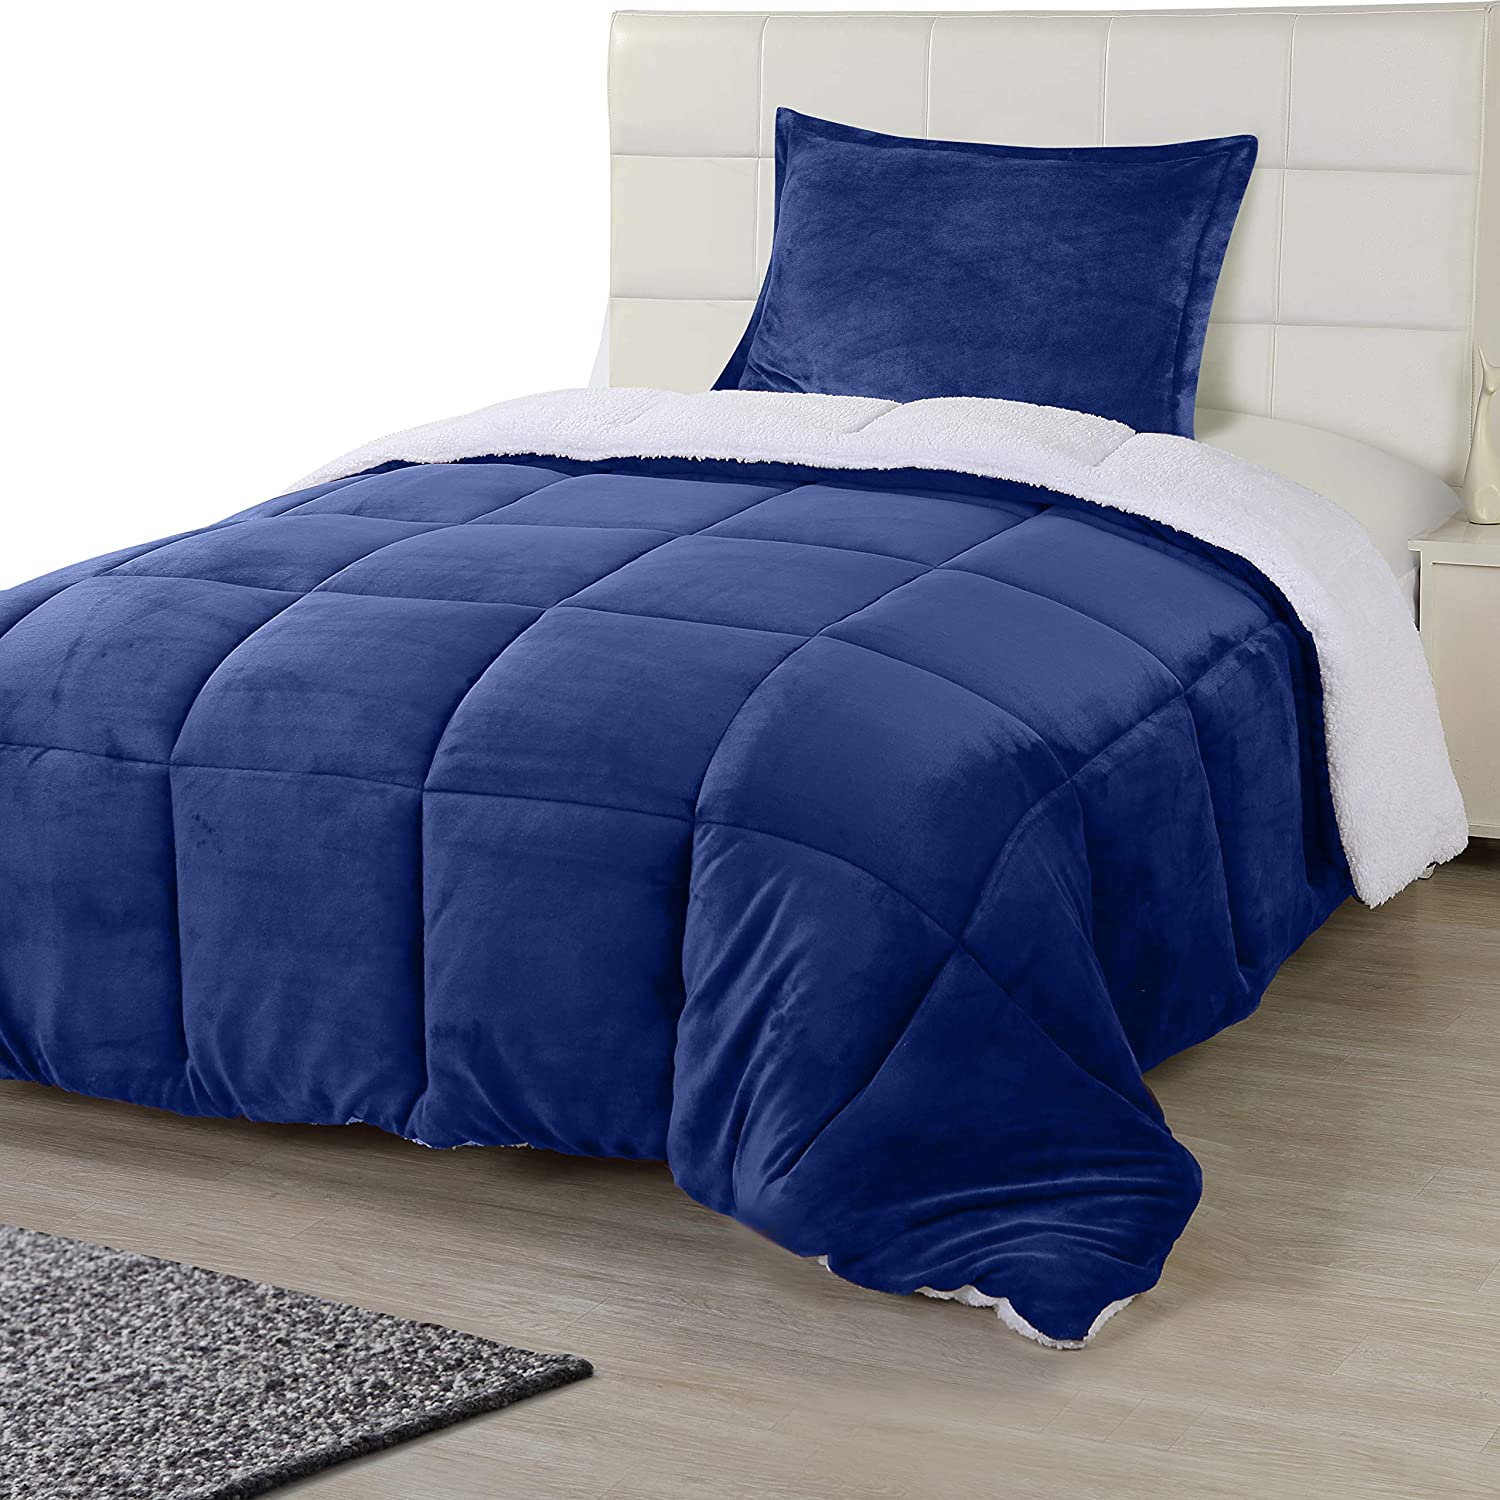 Utopia Bedding All Season Alternative Fleece Comforter - Reversible Sherpa Comforter Set (Twin, Navy) with 1 Pillow Sham - Soft and Comfortable - Machine Washable